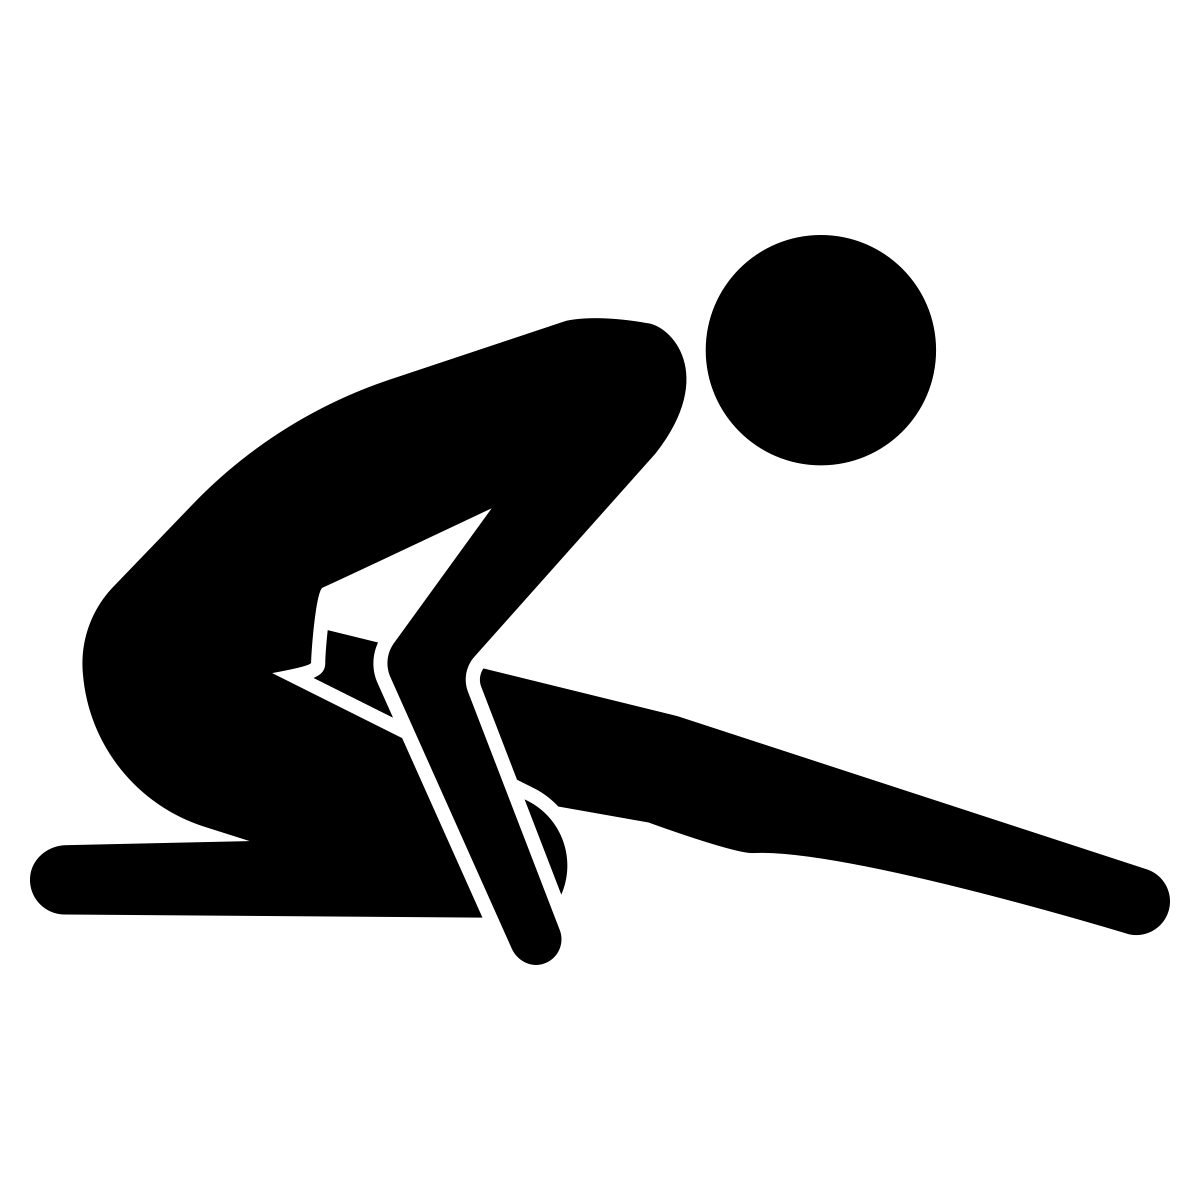 runner stretching icon